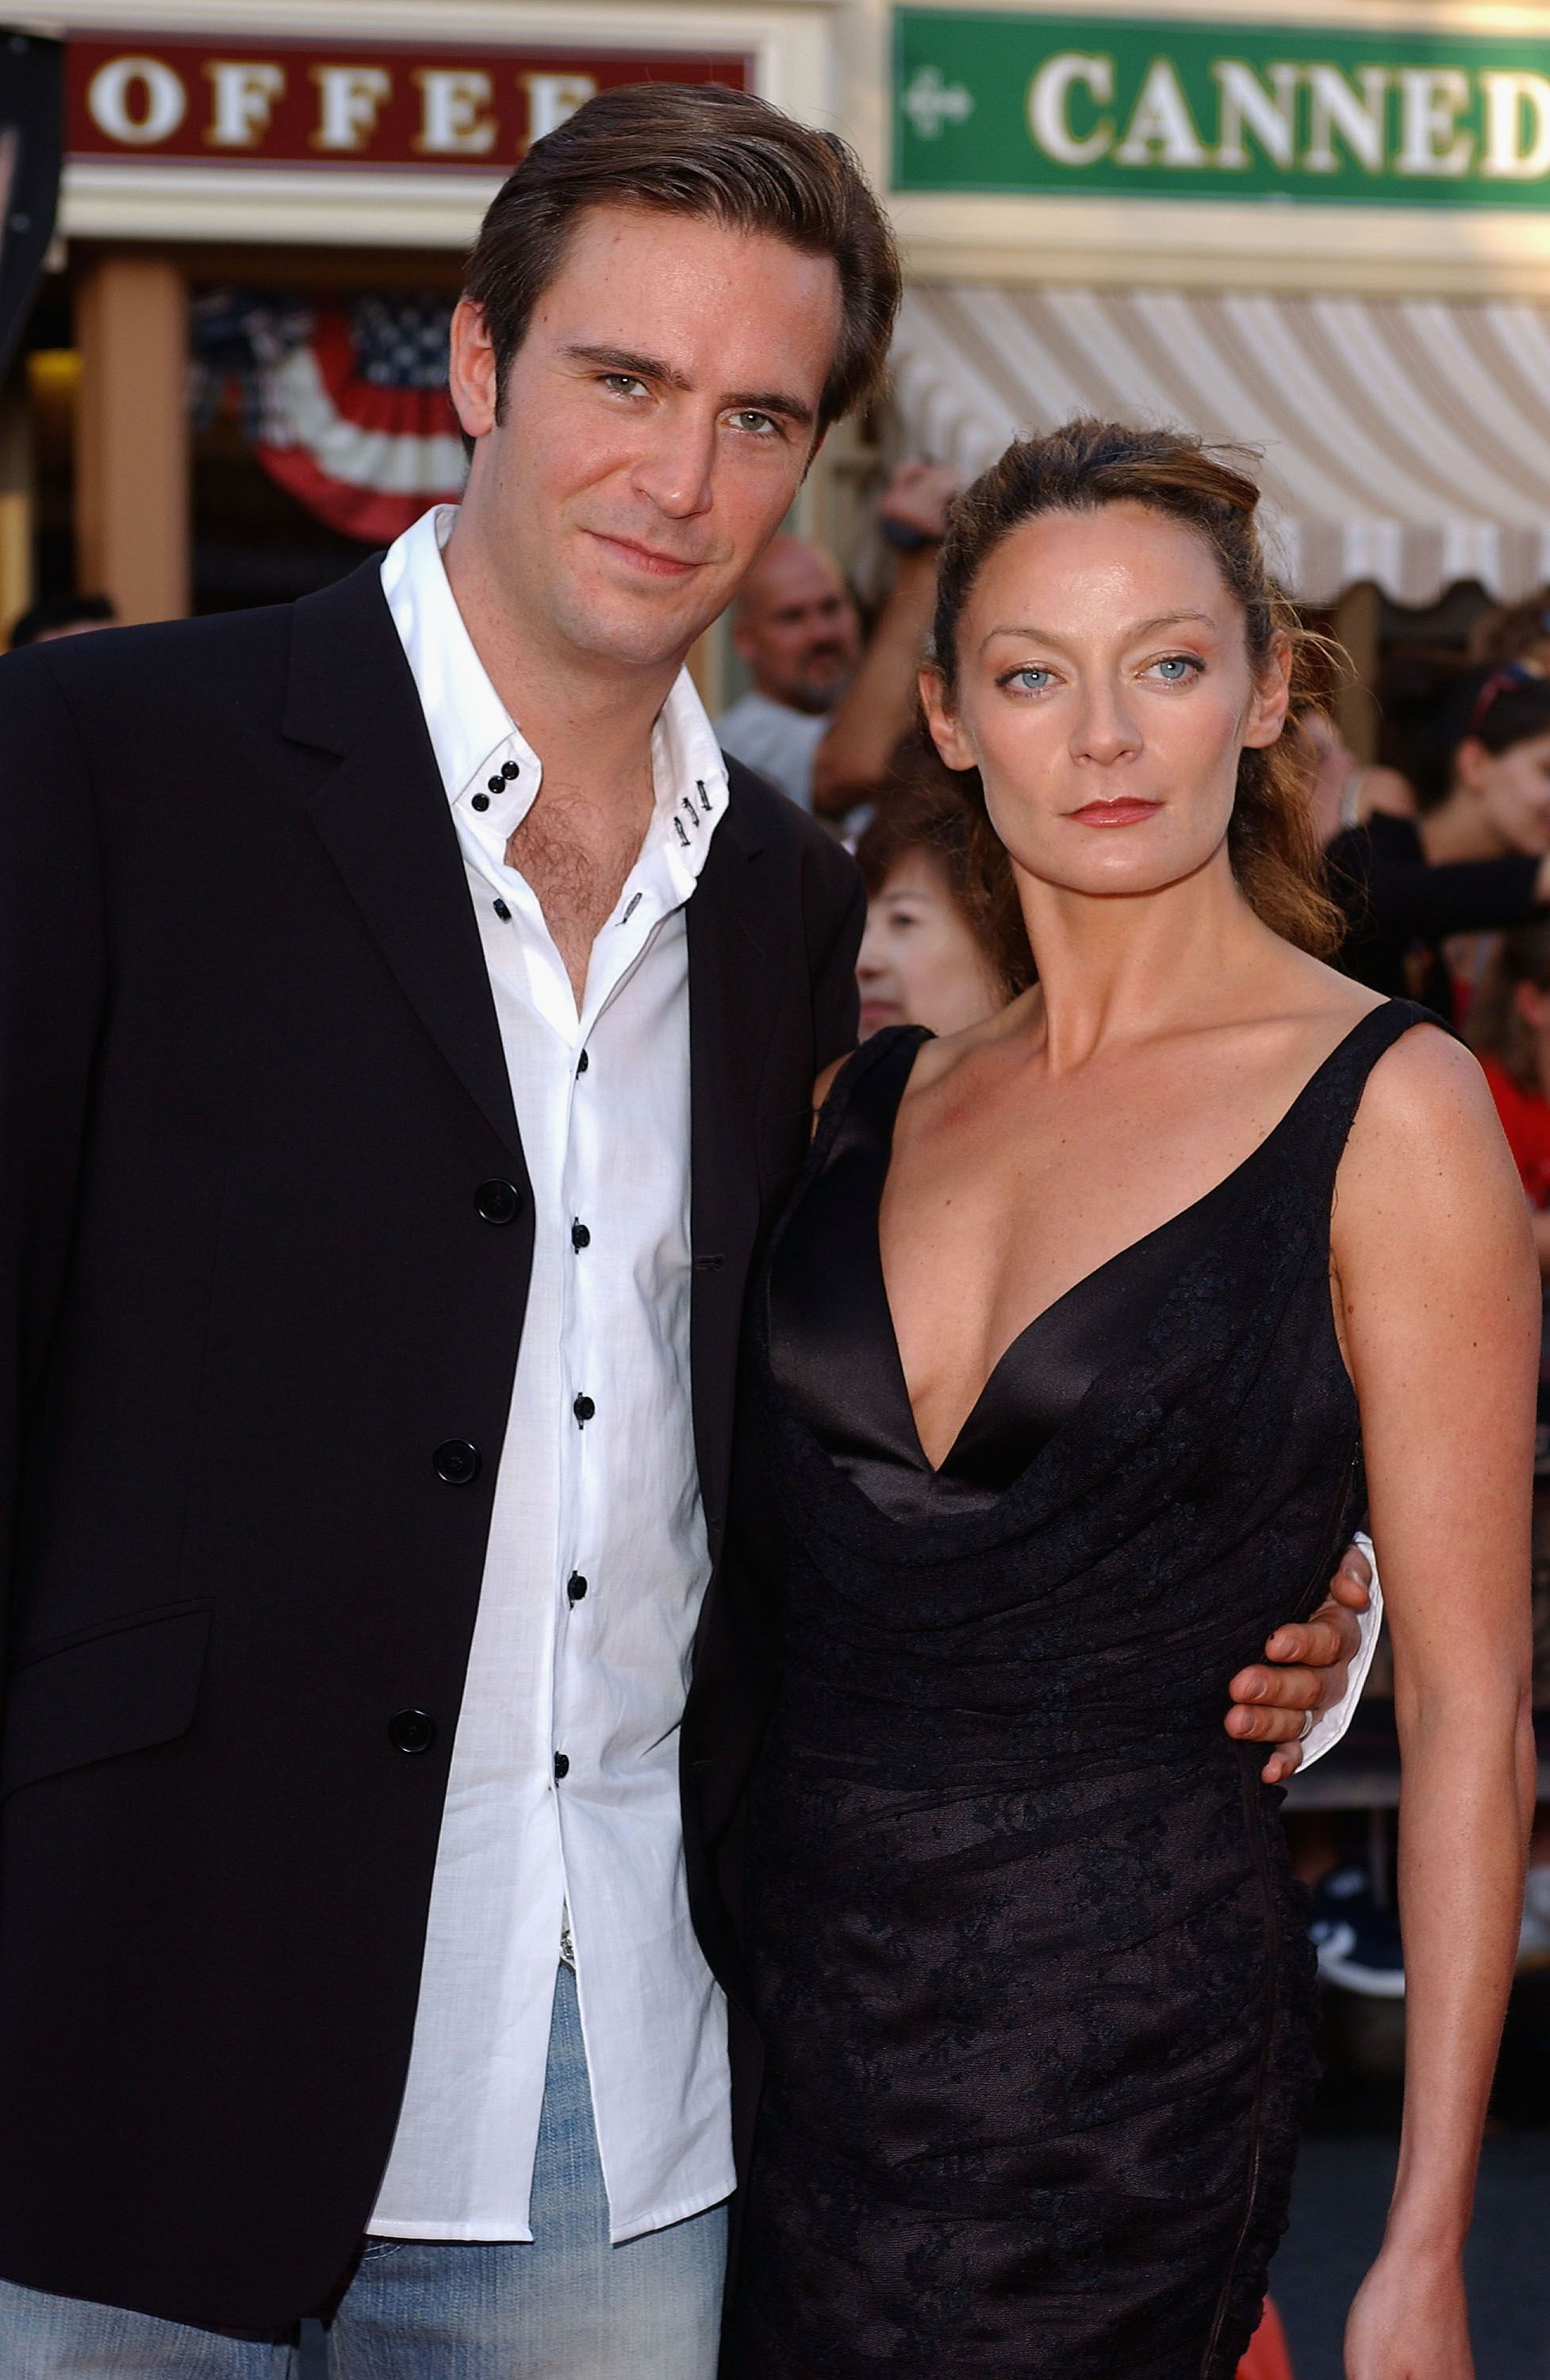 """Jack Davenport and Michelle Gomez at the world premiere of """"Pirates of the Caribbean: The Curse of the Black Pearl"""" in 2003 in Anaheim, California 